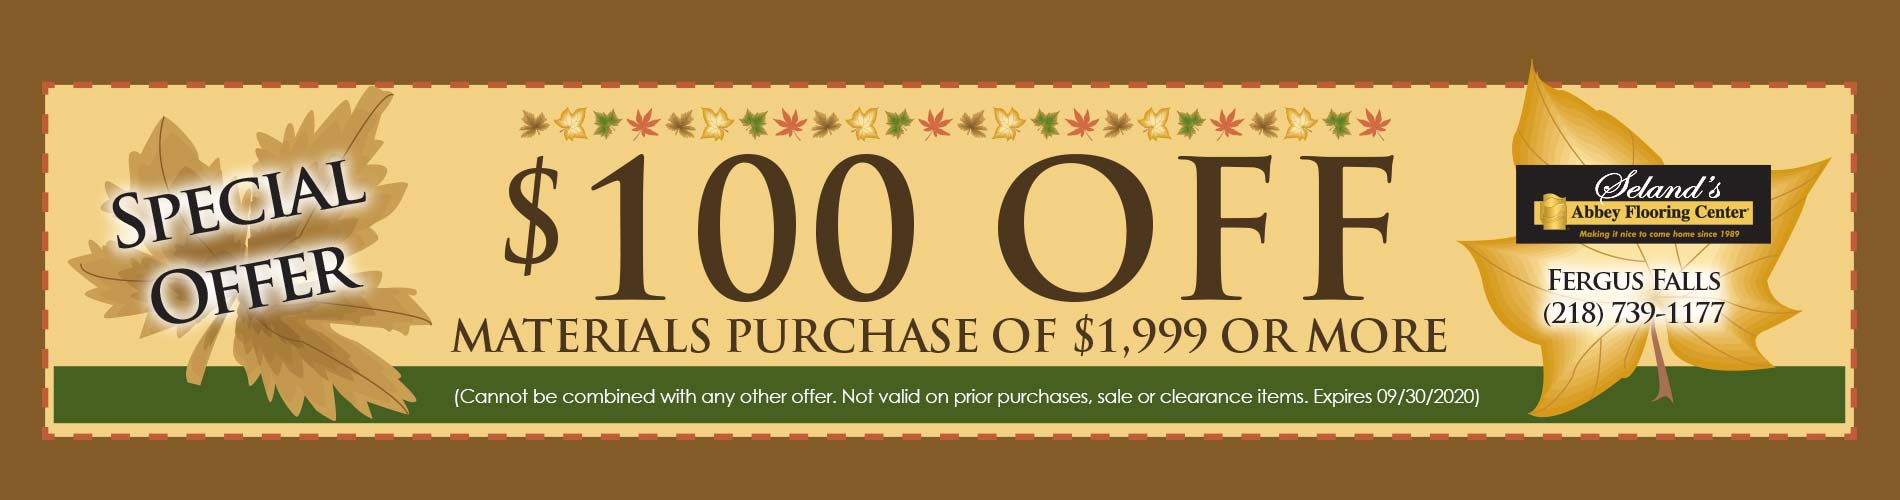 Fall Home Makeover Sale Going On Now! Receive $100 off materials purchase of $1,999 or more (cannot be combined with any other offer. Not valid on prior purchases, sale or clearance items. Expires 9/30/2020) Only at Seland's Abbey Flooring Center in Fergus Falls Minnesota.